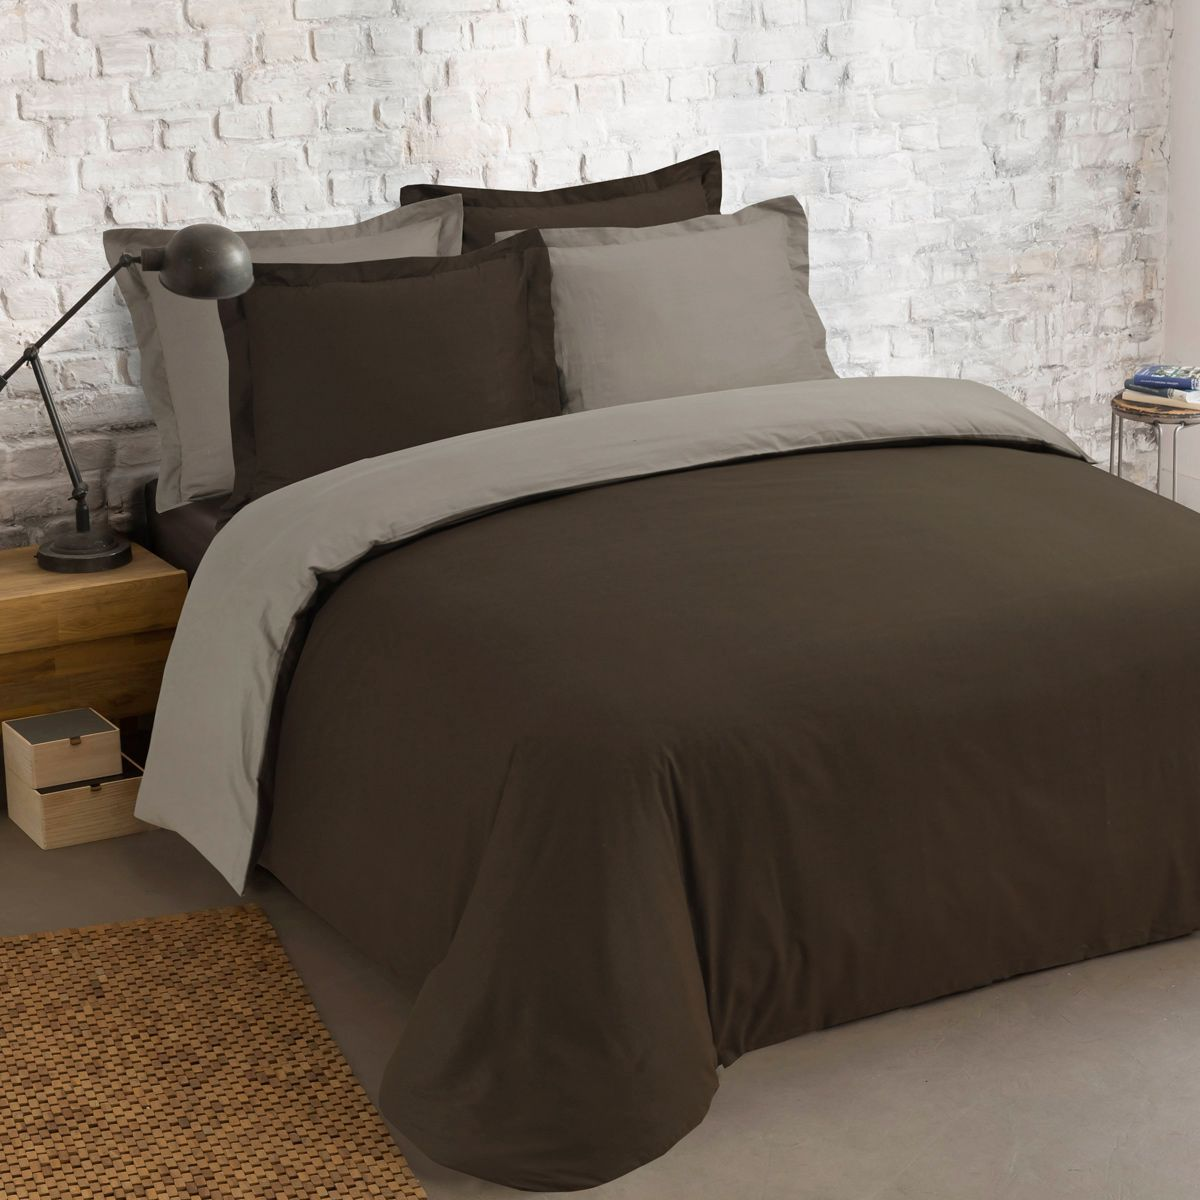 housse de couette et deux taies 240 cm bi color chocolat et taupe housse de couette eminza. Black Bedroom Furniture Sets. Home Design Ideas